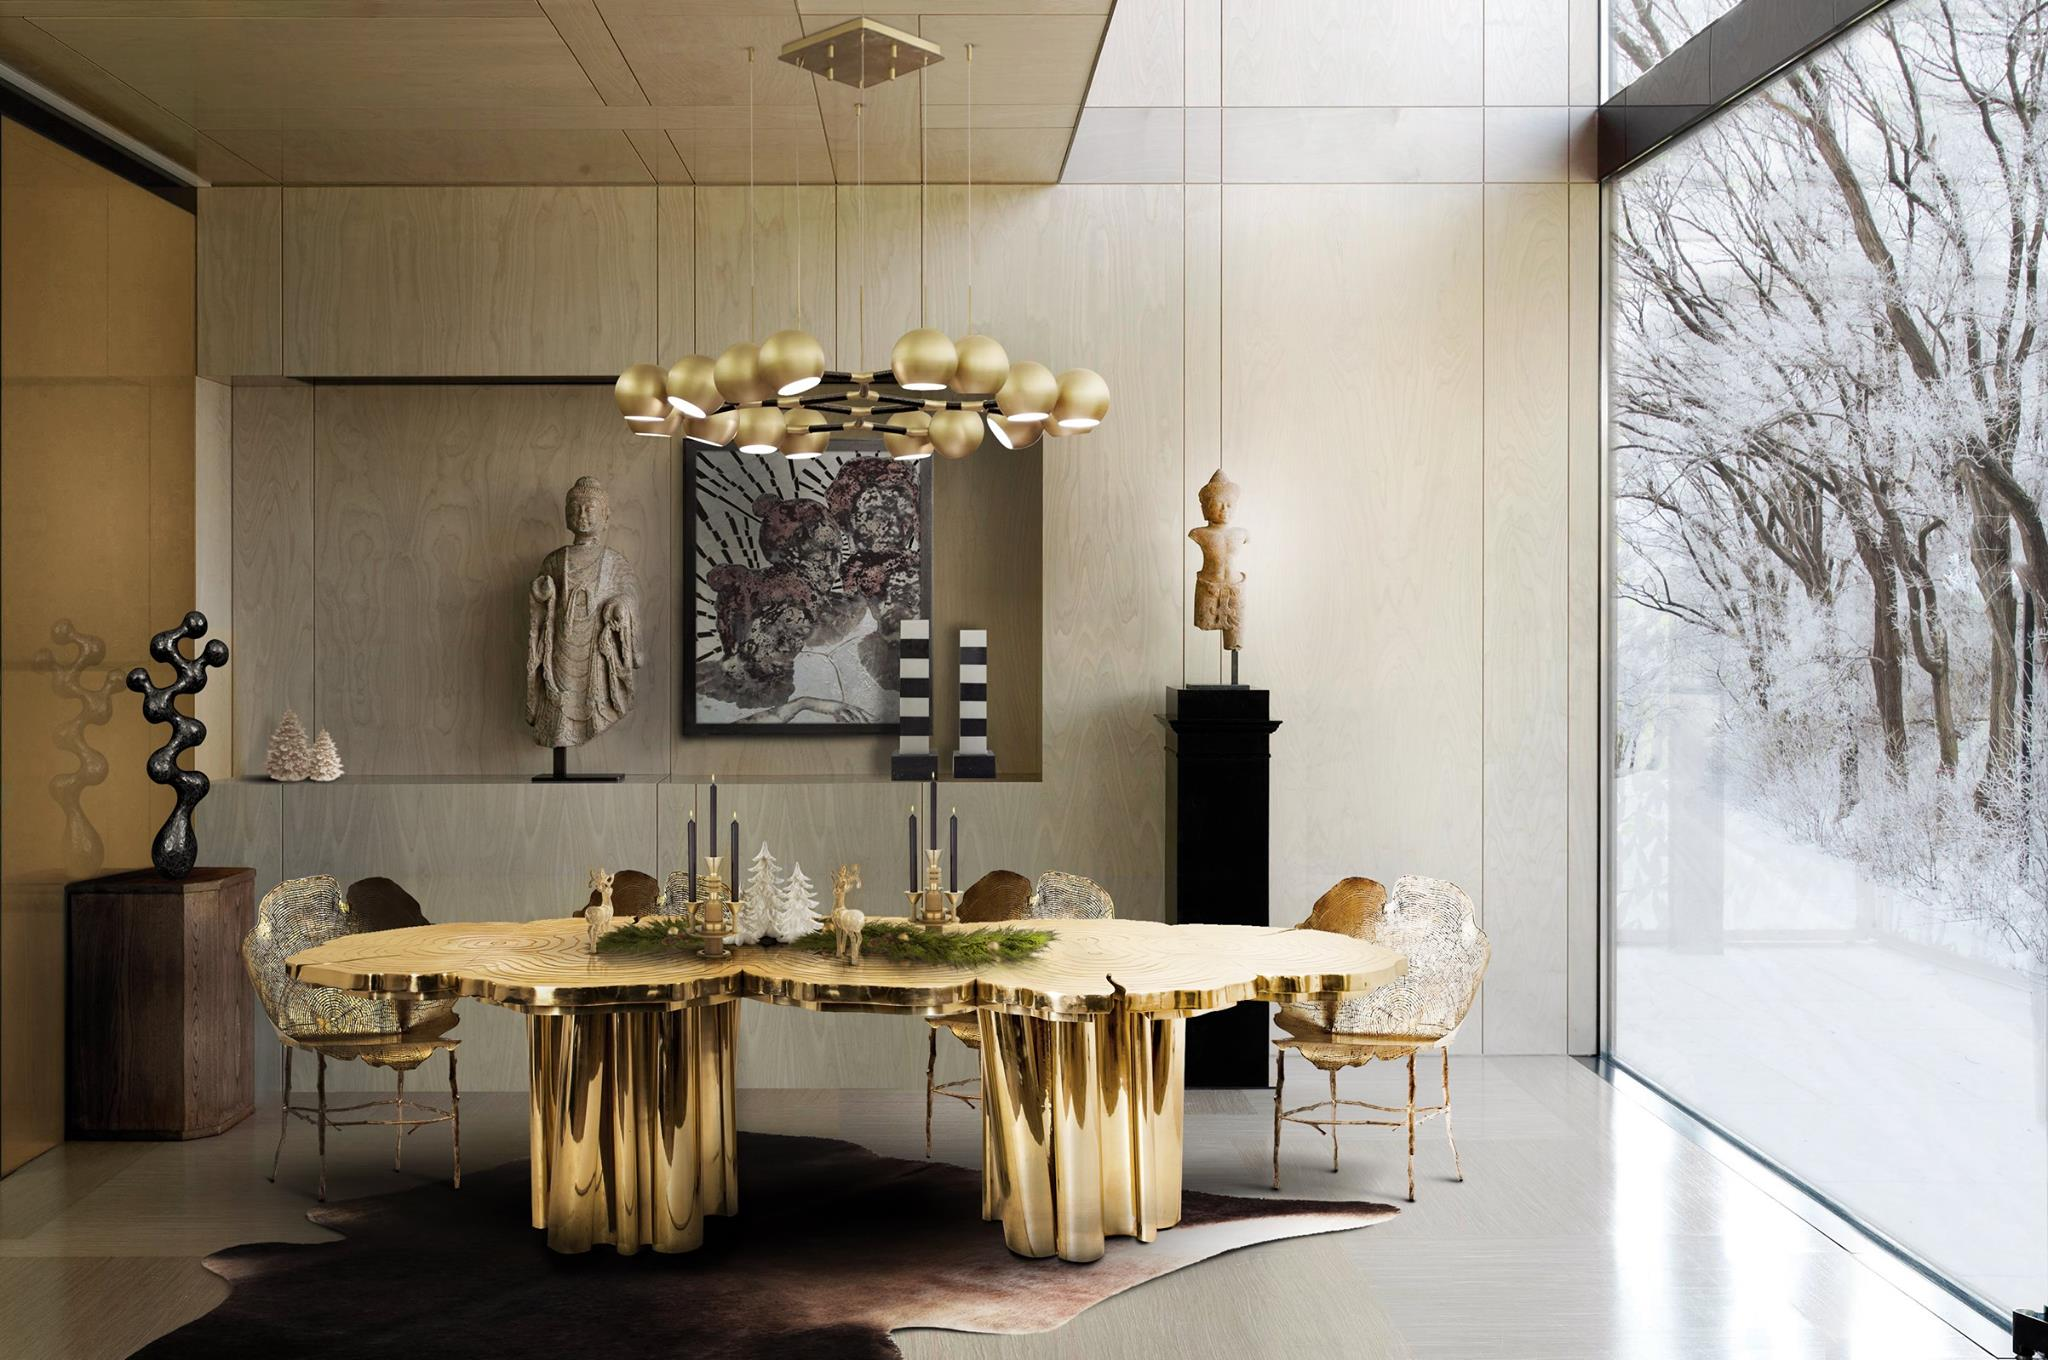 Luxury Brands That you Need to Visit While in Maison et Objet Paris 2017 Maison et Objet Paris Luxury Brands That you Need to Visit While in Maison et Objet Paris Luxury Brands That you Need to Visit While in Maison et Objet Paris 20176